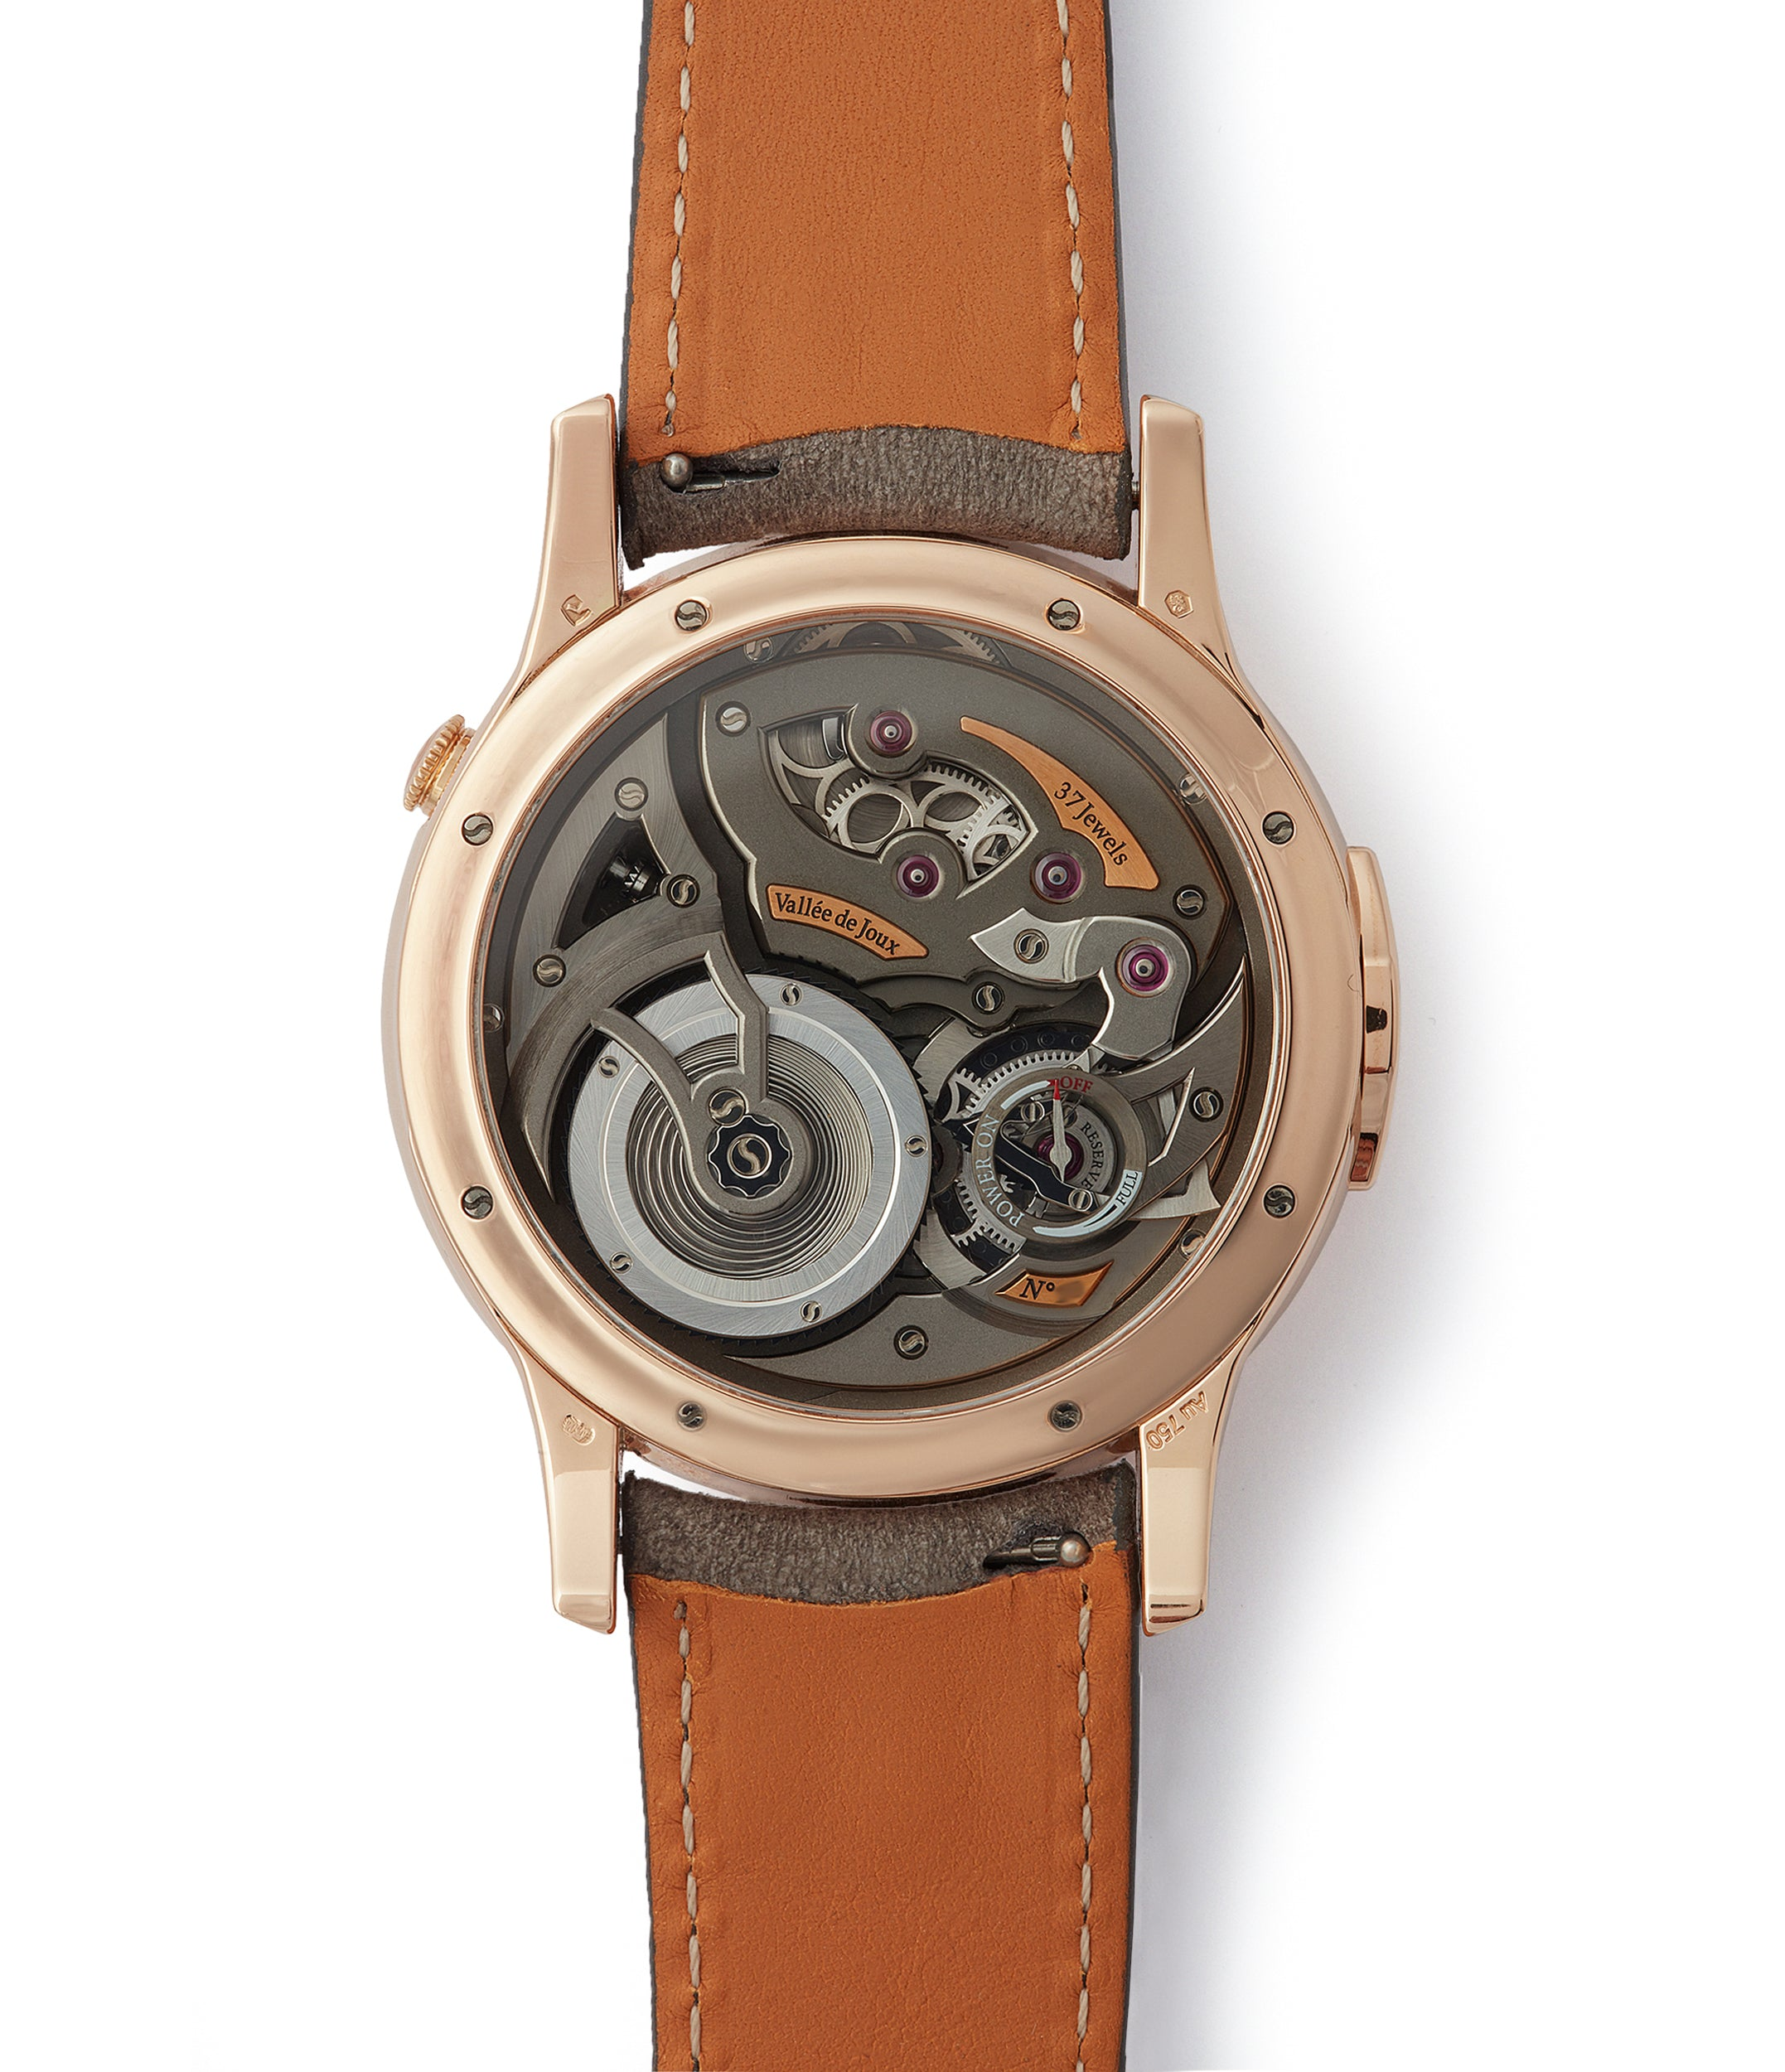 pink gold Romain Gauthier Logical One red gold dress watch by independent watchmaker for sale online at A Collected Man London UK specialist of rare watches